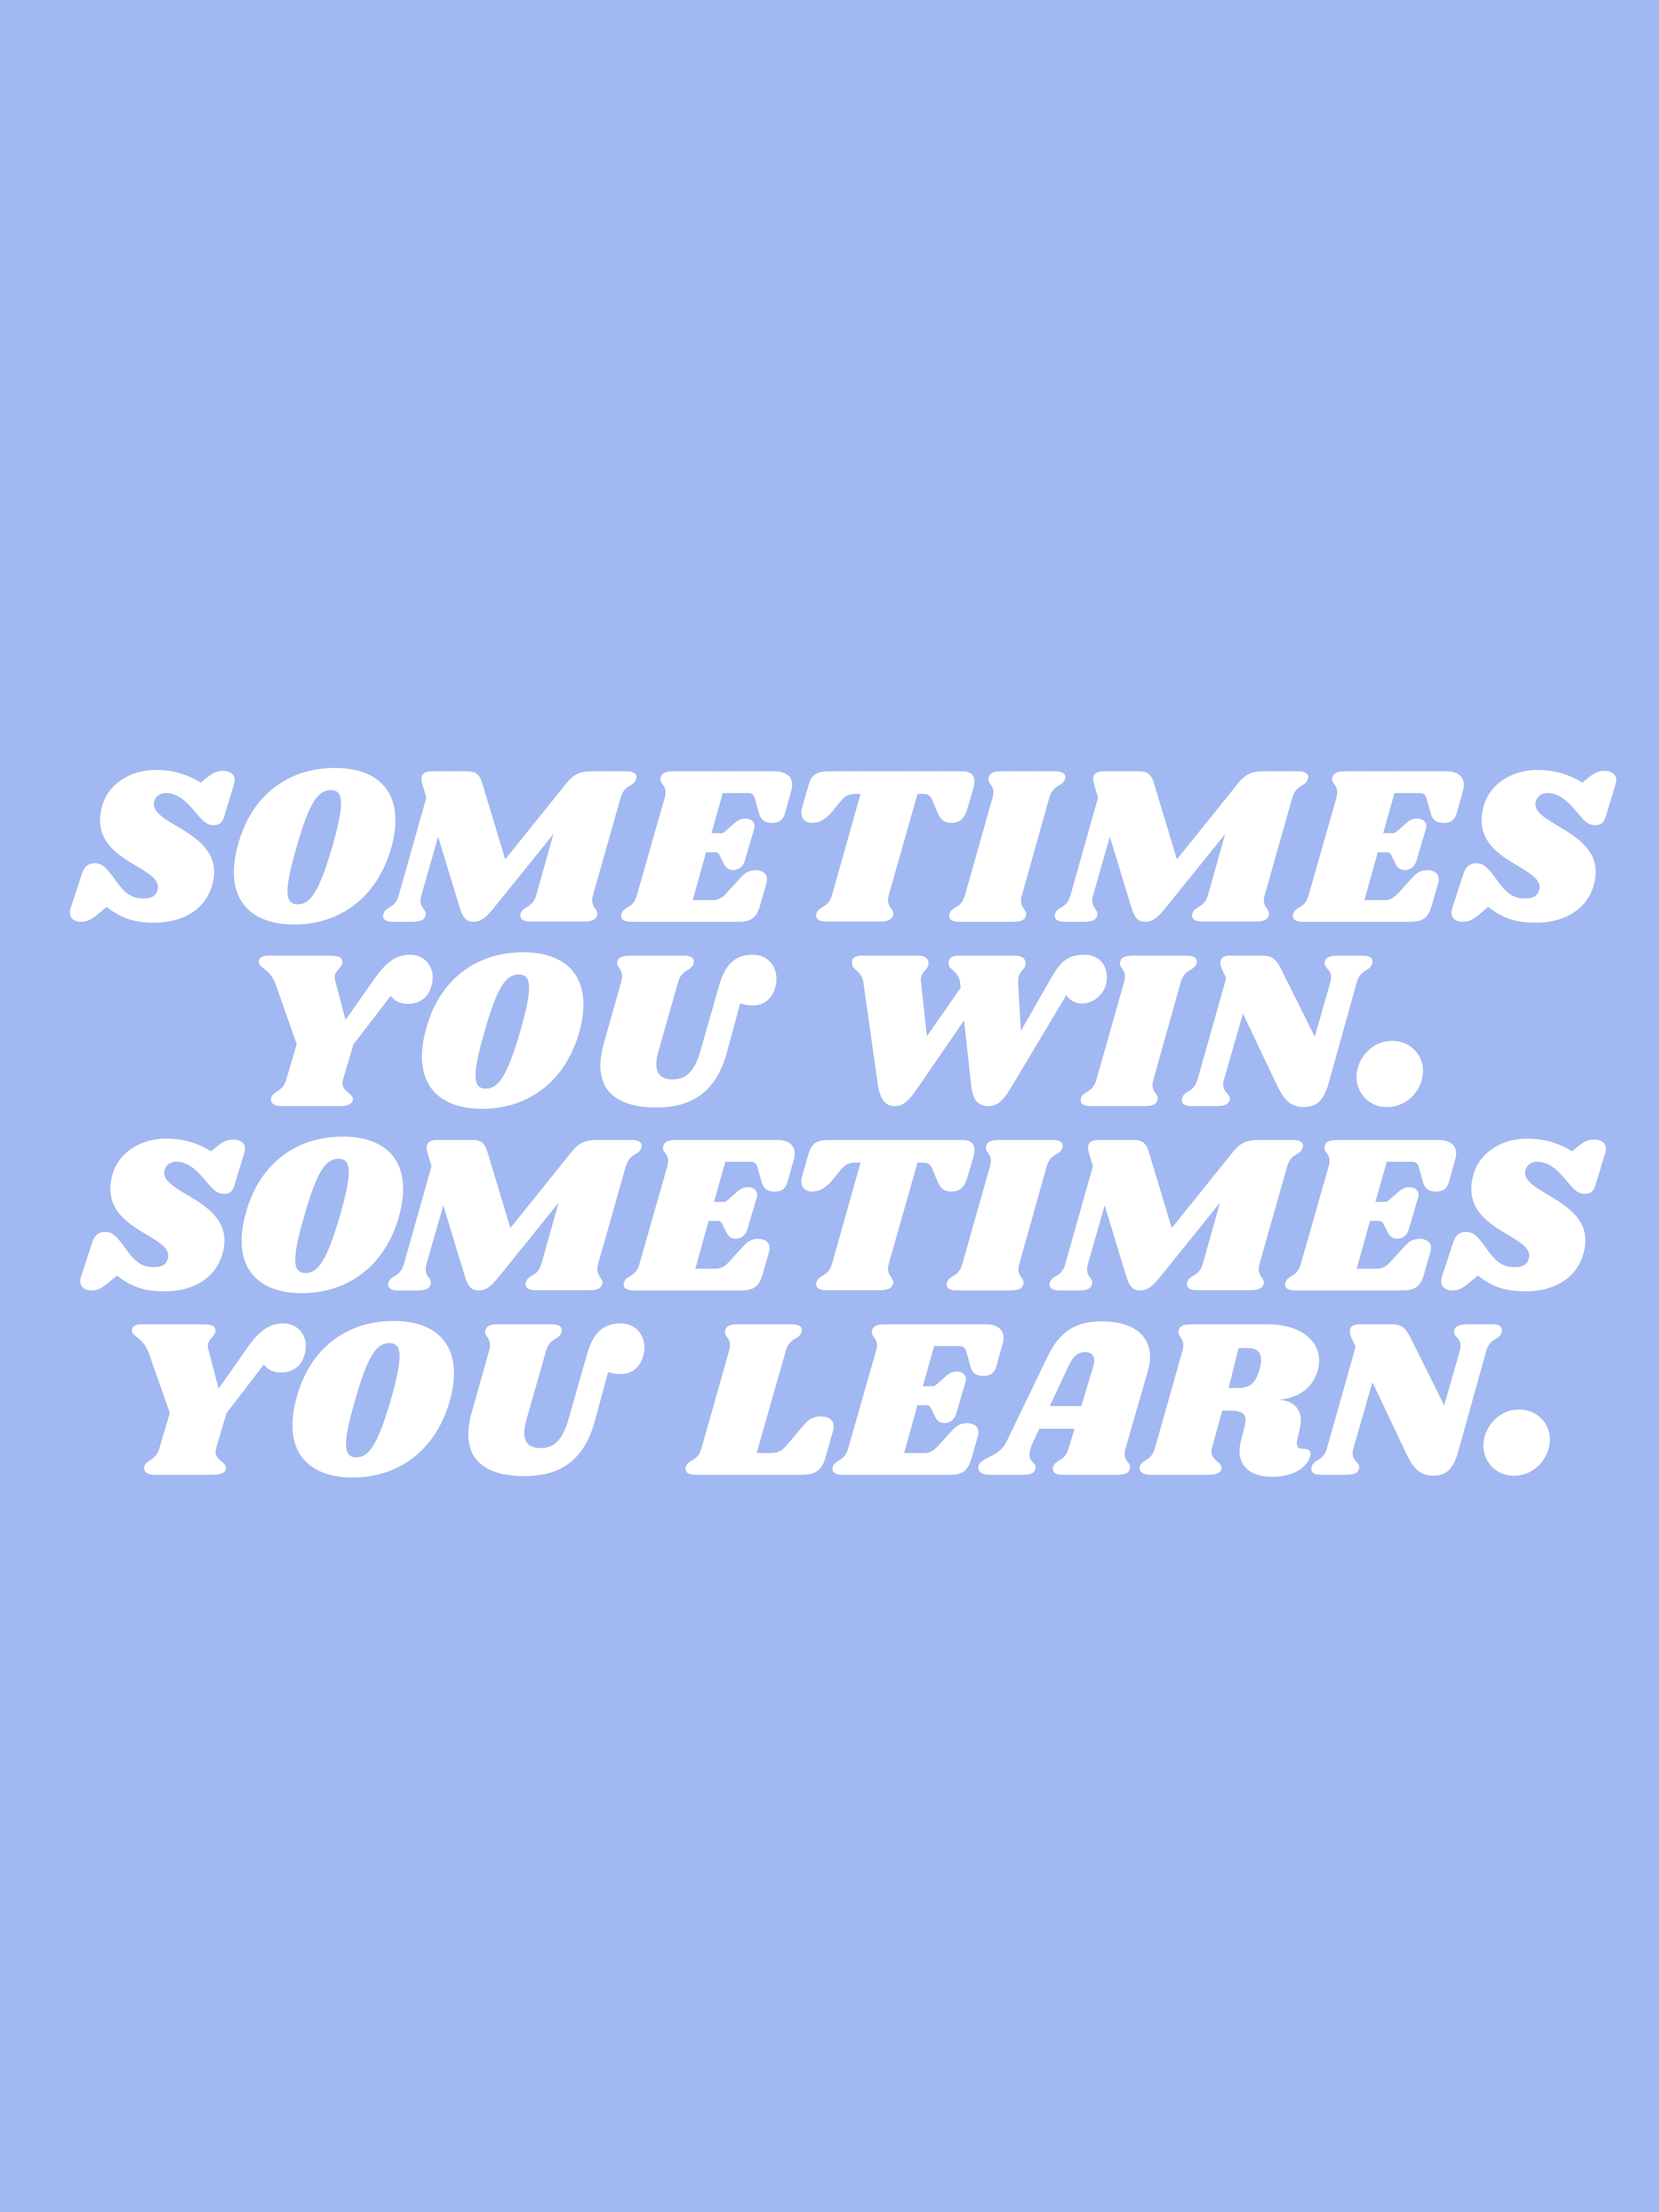 sometimes you win sometimes you learn | society6.com/typeangel